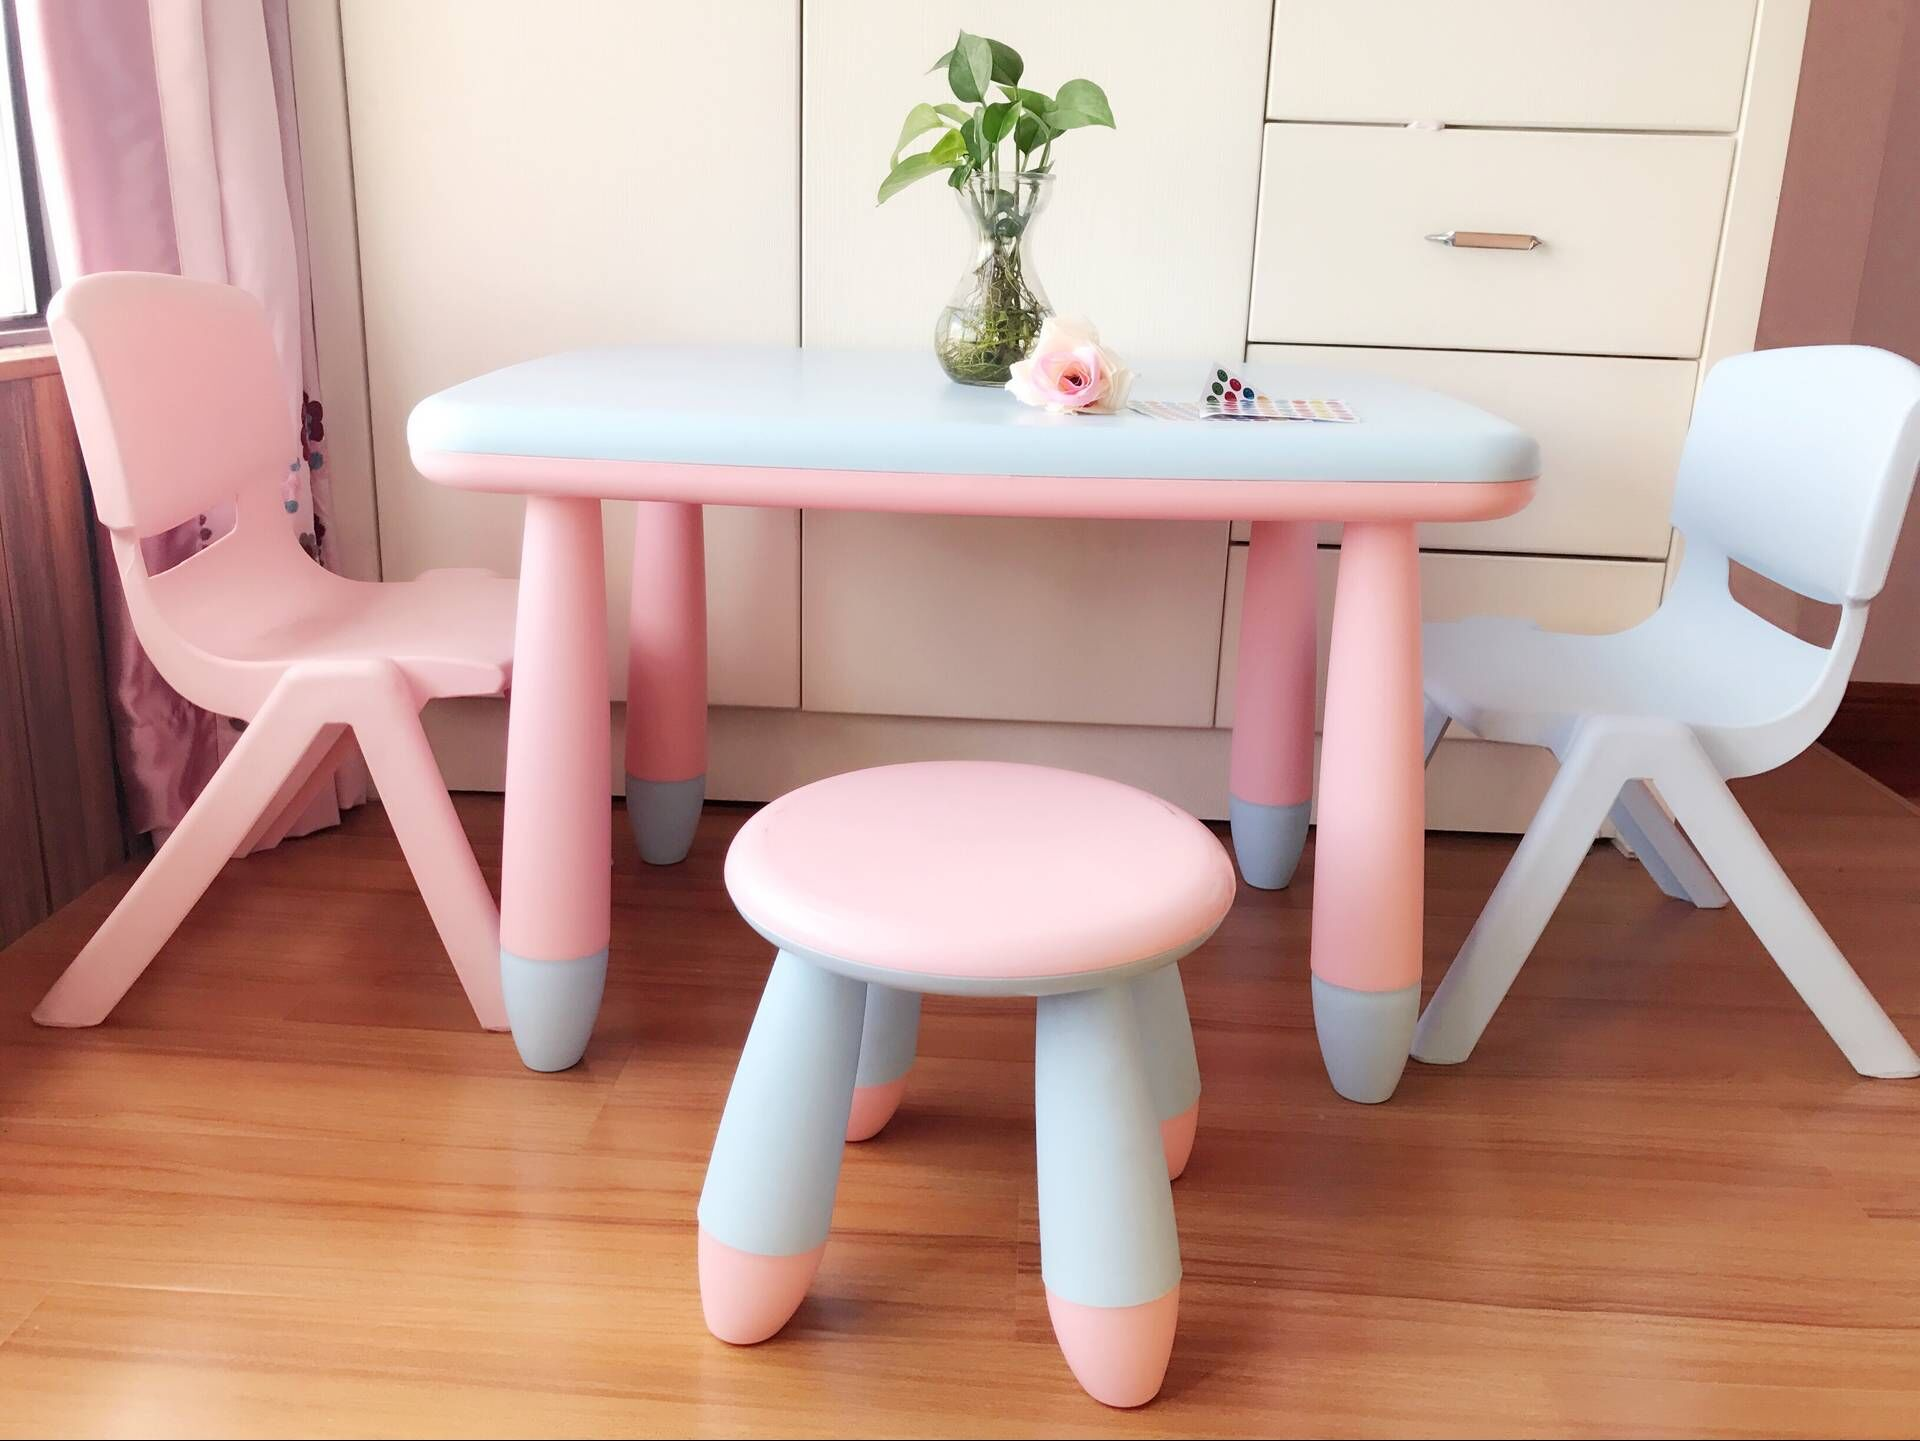 Kindergarten children table and chair set plastic table chair baby learning table childrenu0027s toy table thick removable & Kindergarten children table and chair set plastic table chair baby ...